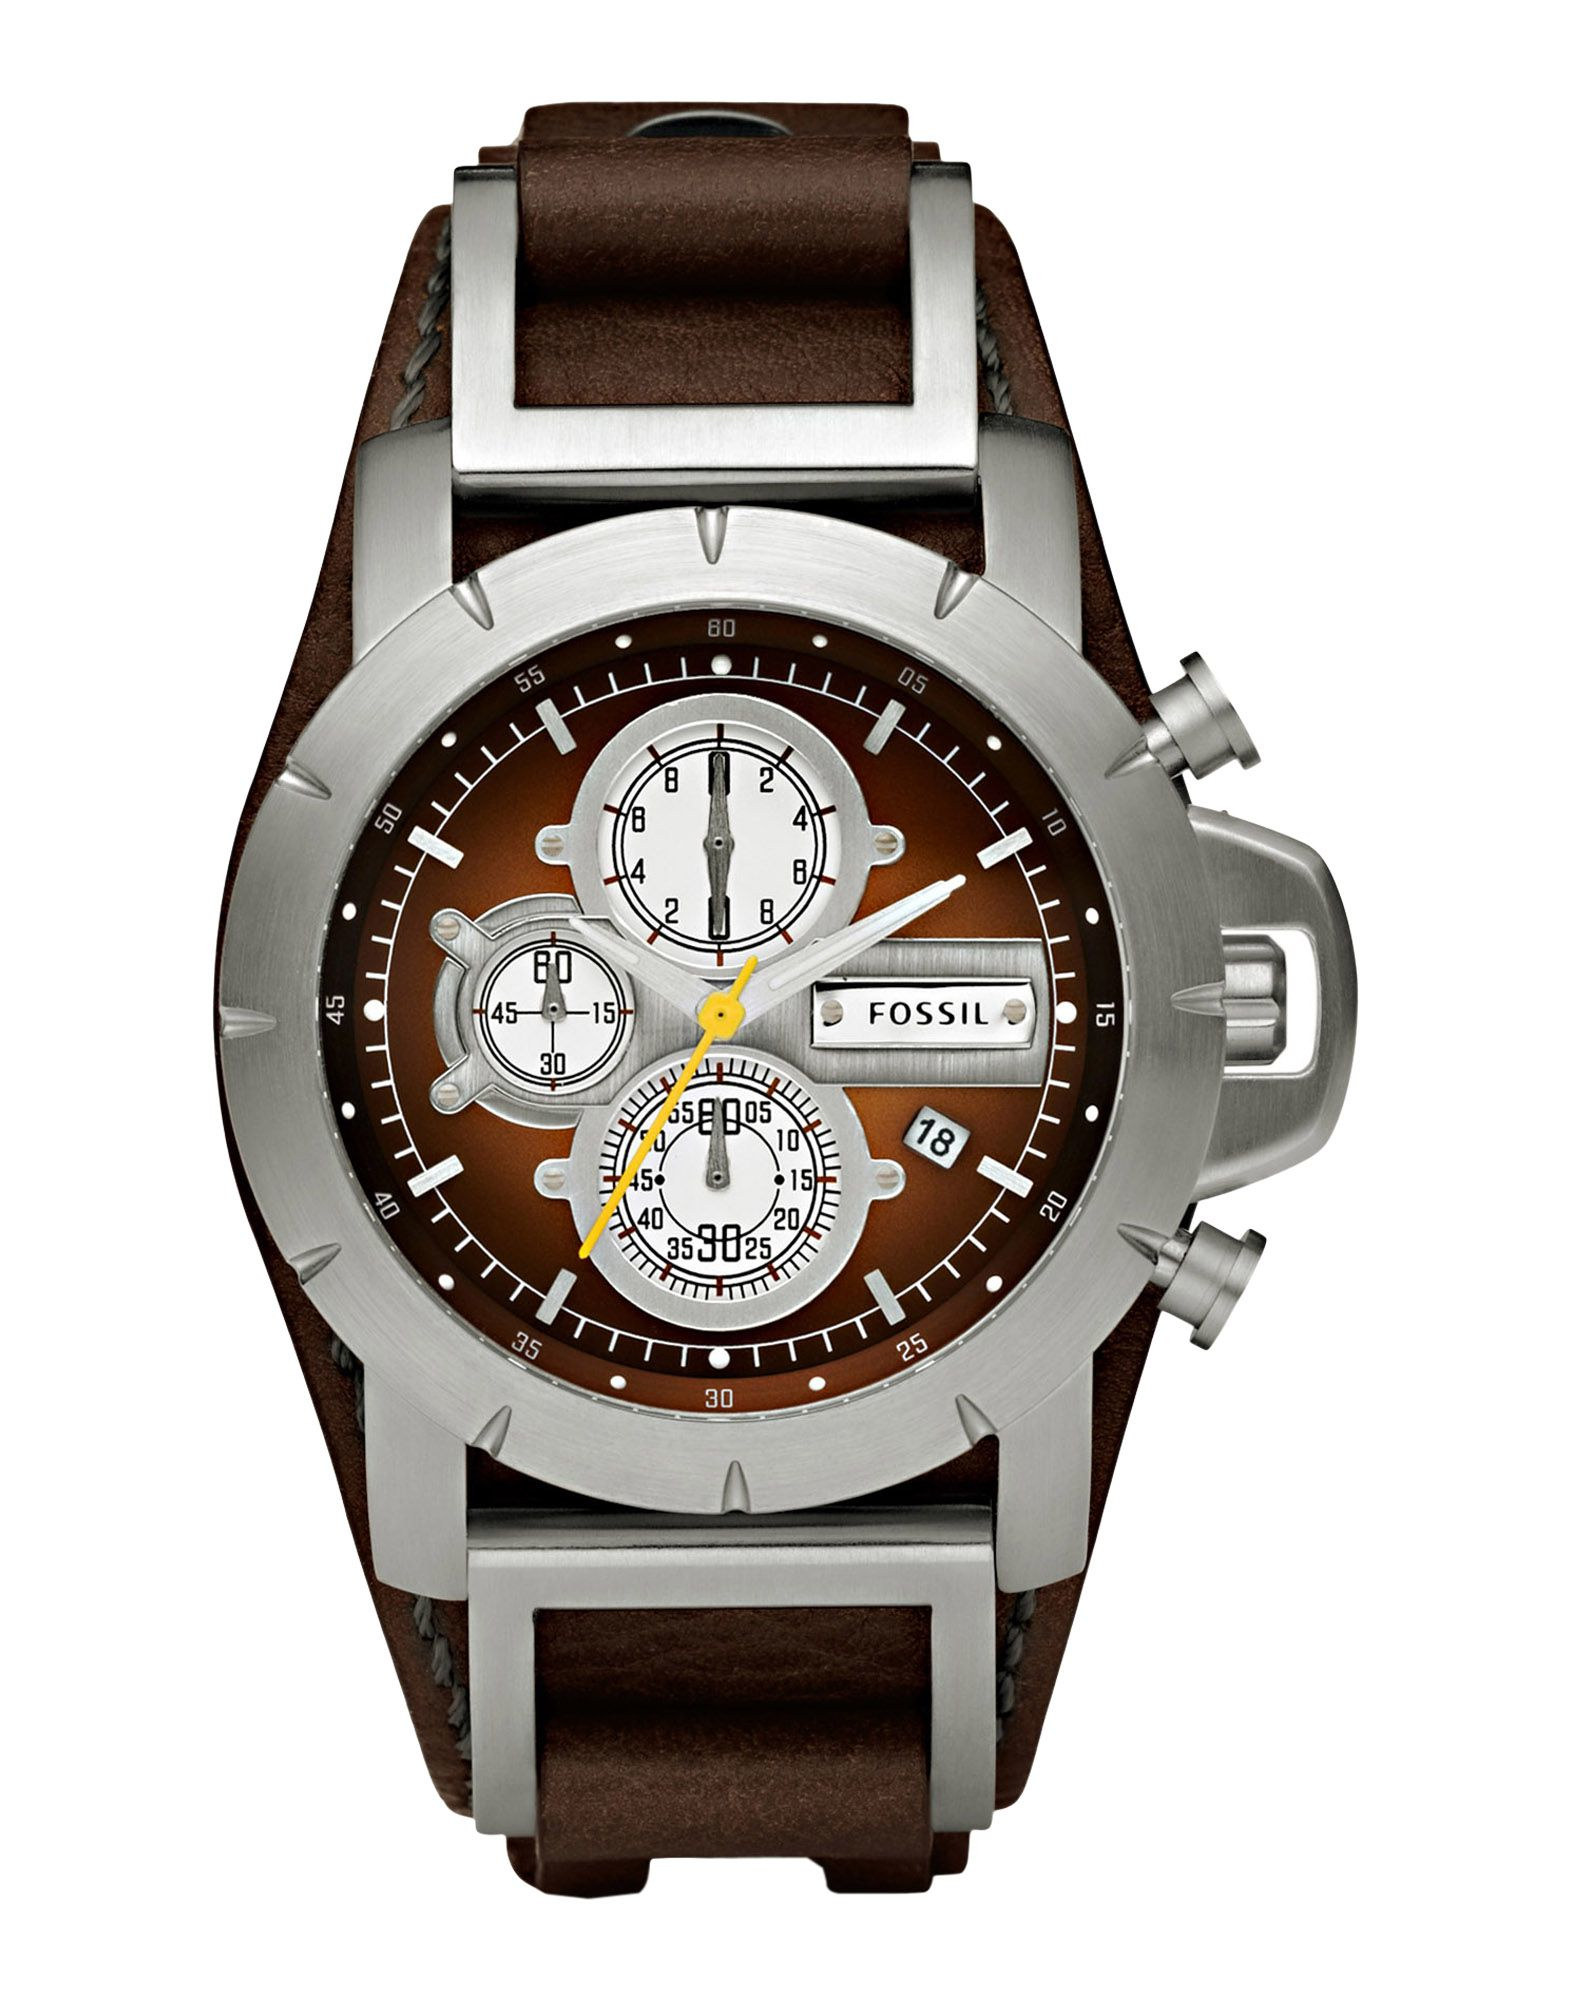 lyst fossil wrist watch in brown for men. Black Bedroom Furniture Sets. Home Design Ideas